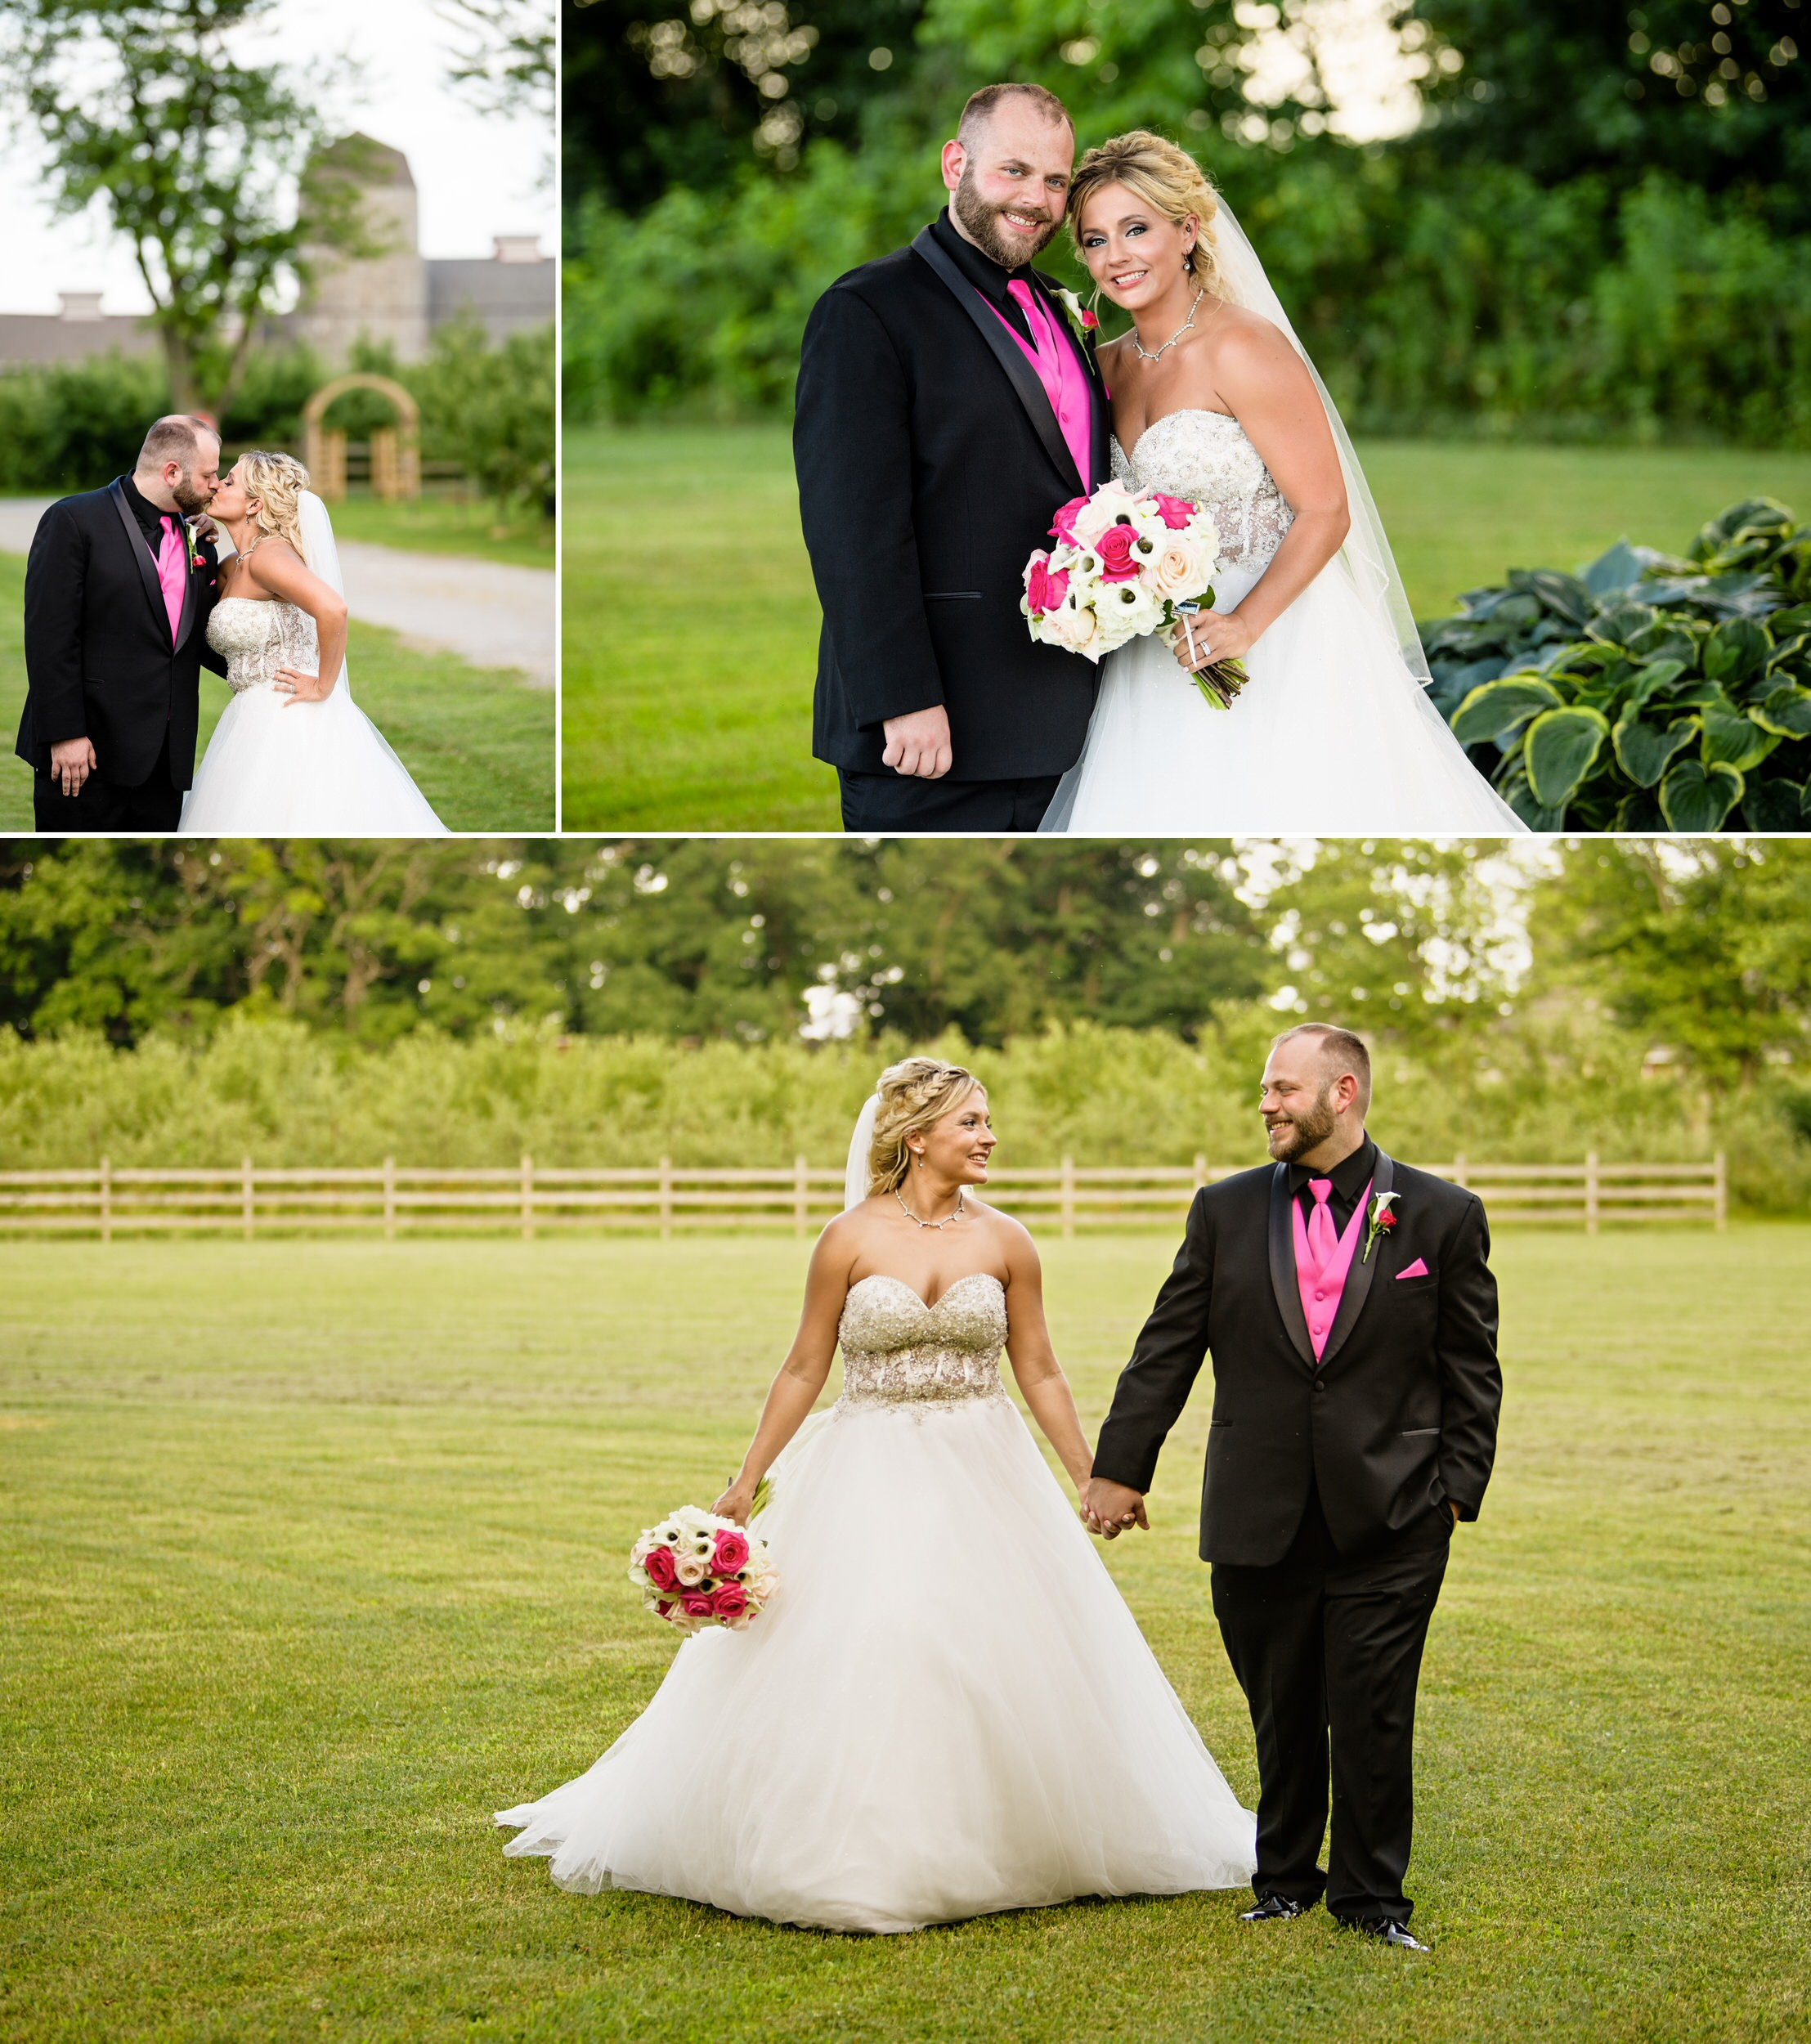 Bride and groom photos on the grounds of County Line Orchard in Hobart, Indiana.